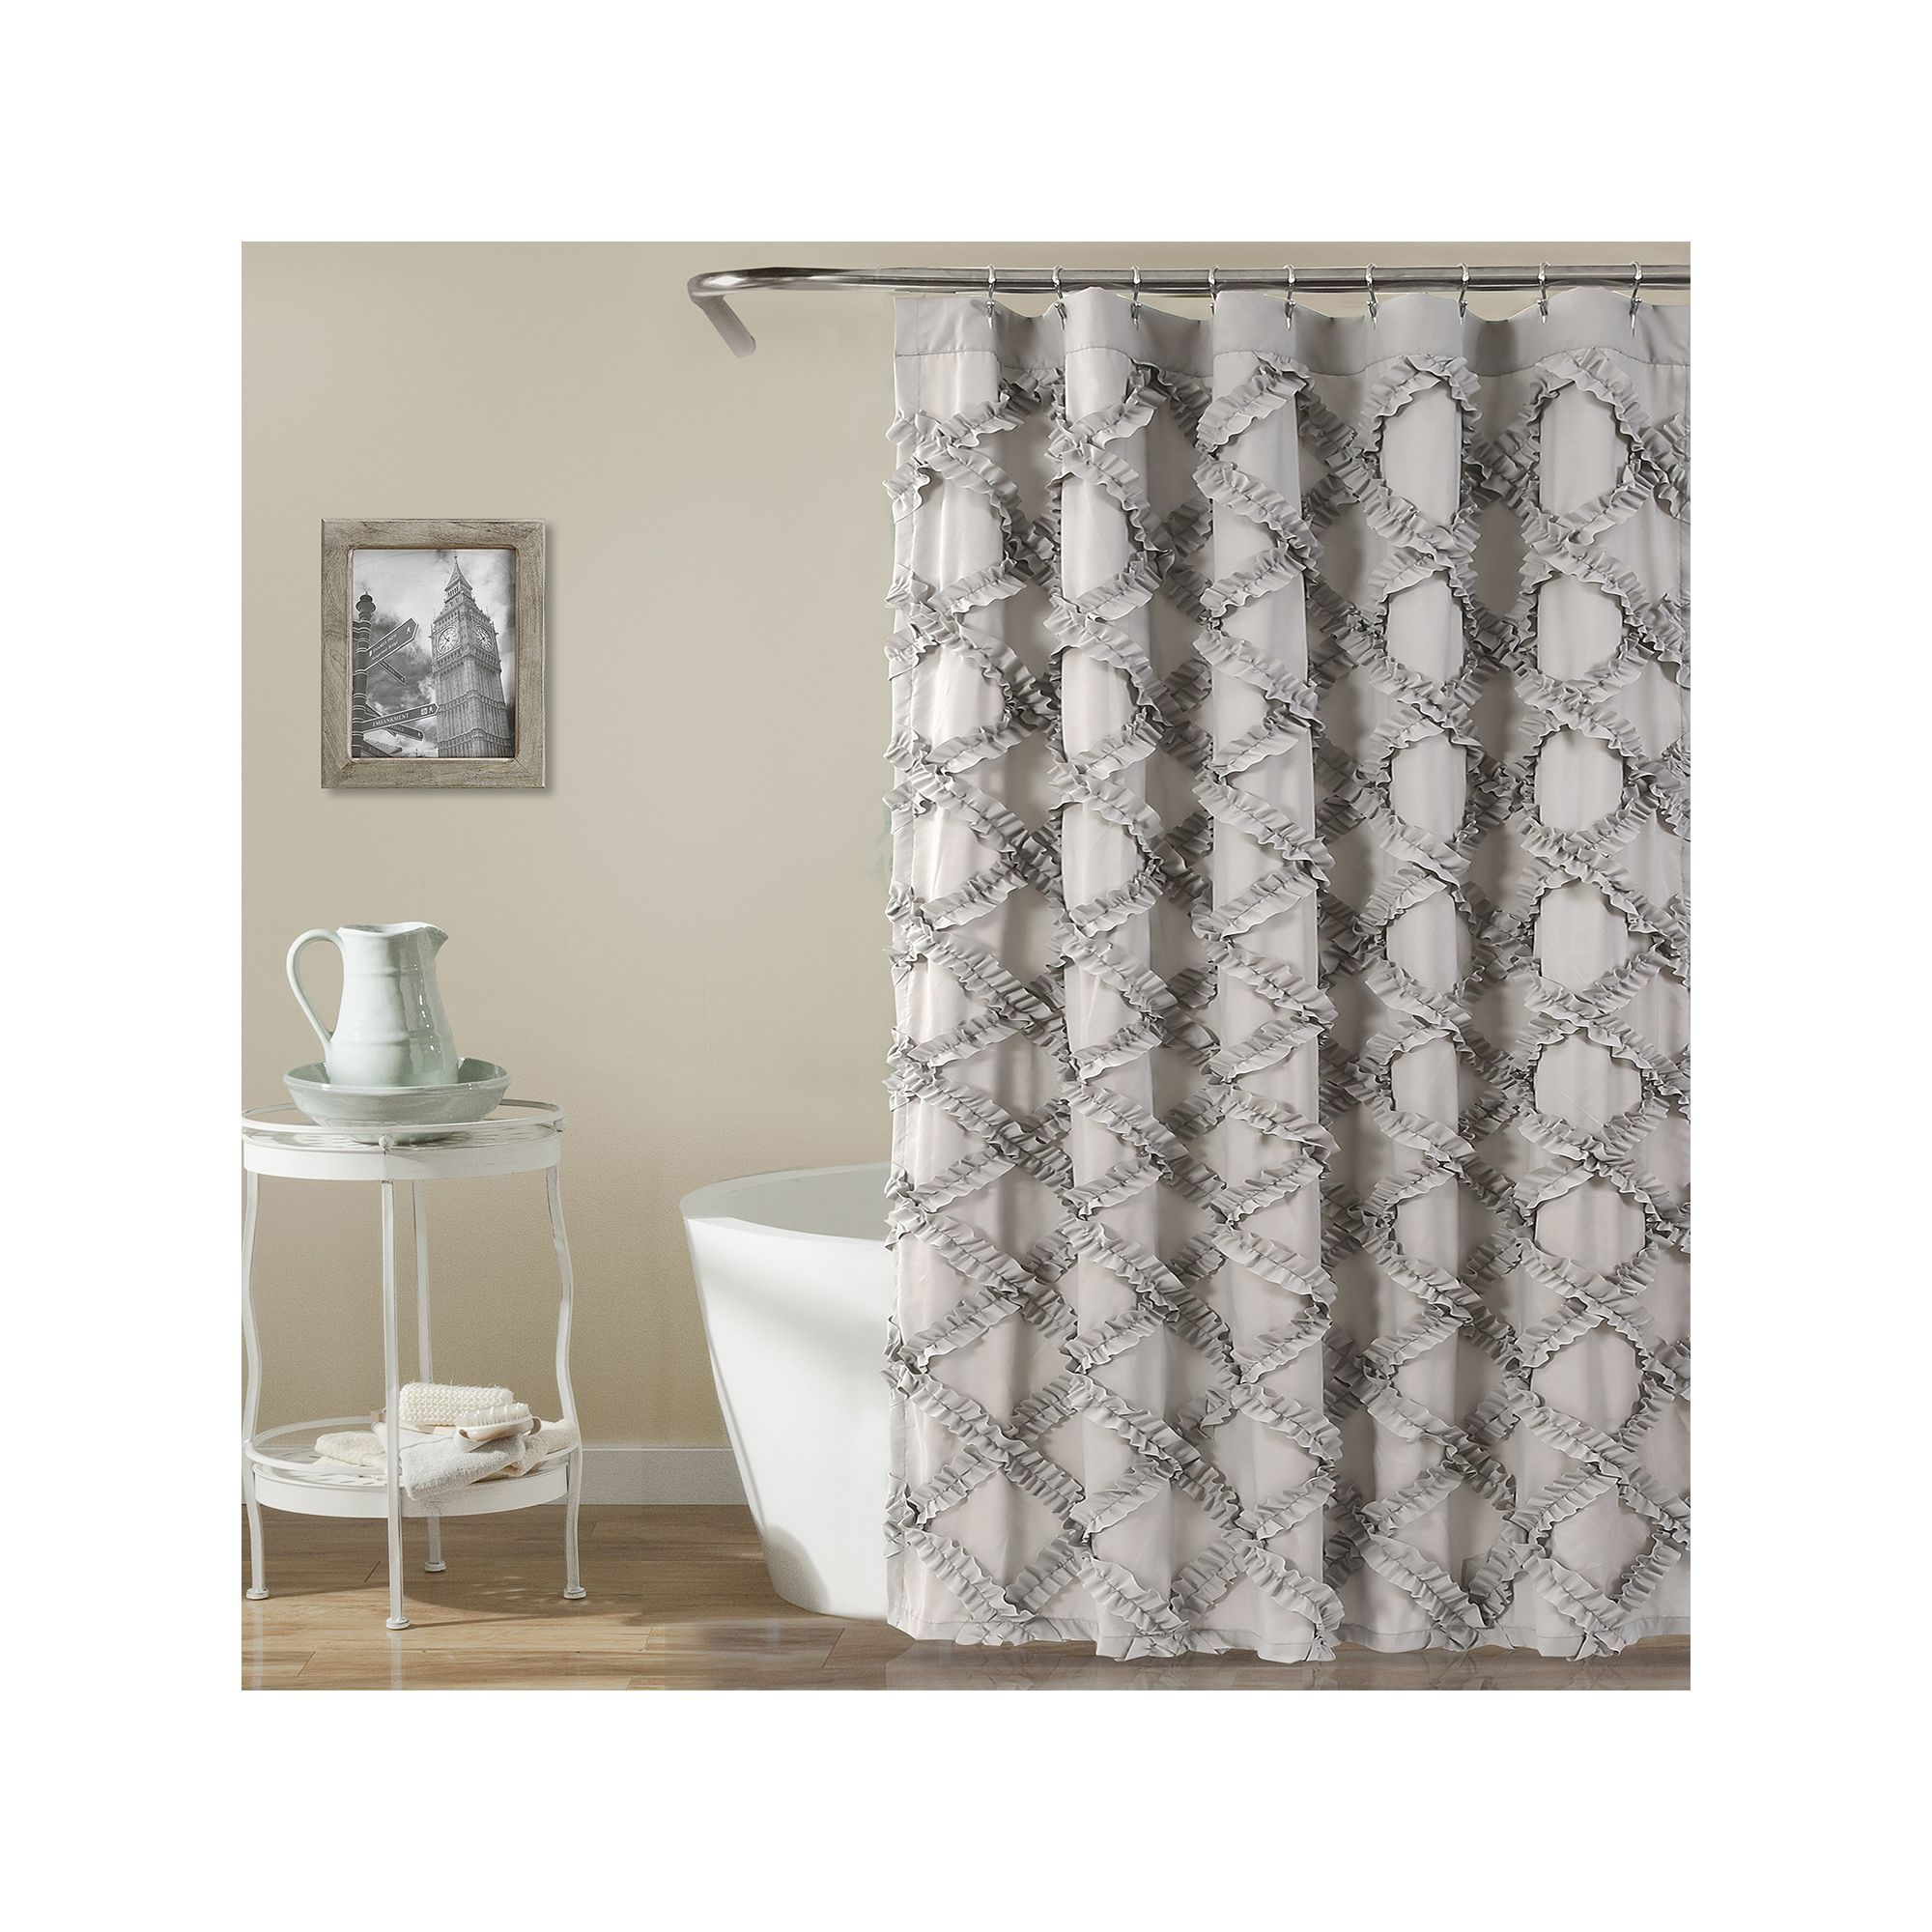 Lush Decor Ruffle Diamond Shower Curtain Grey